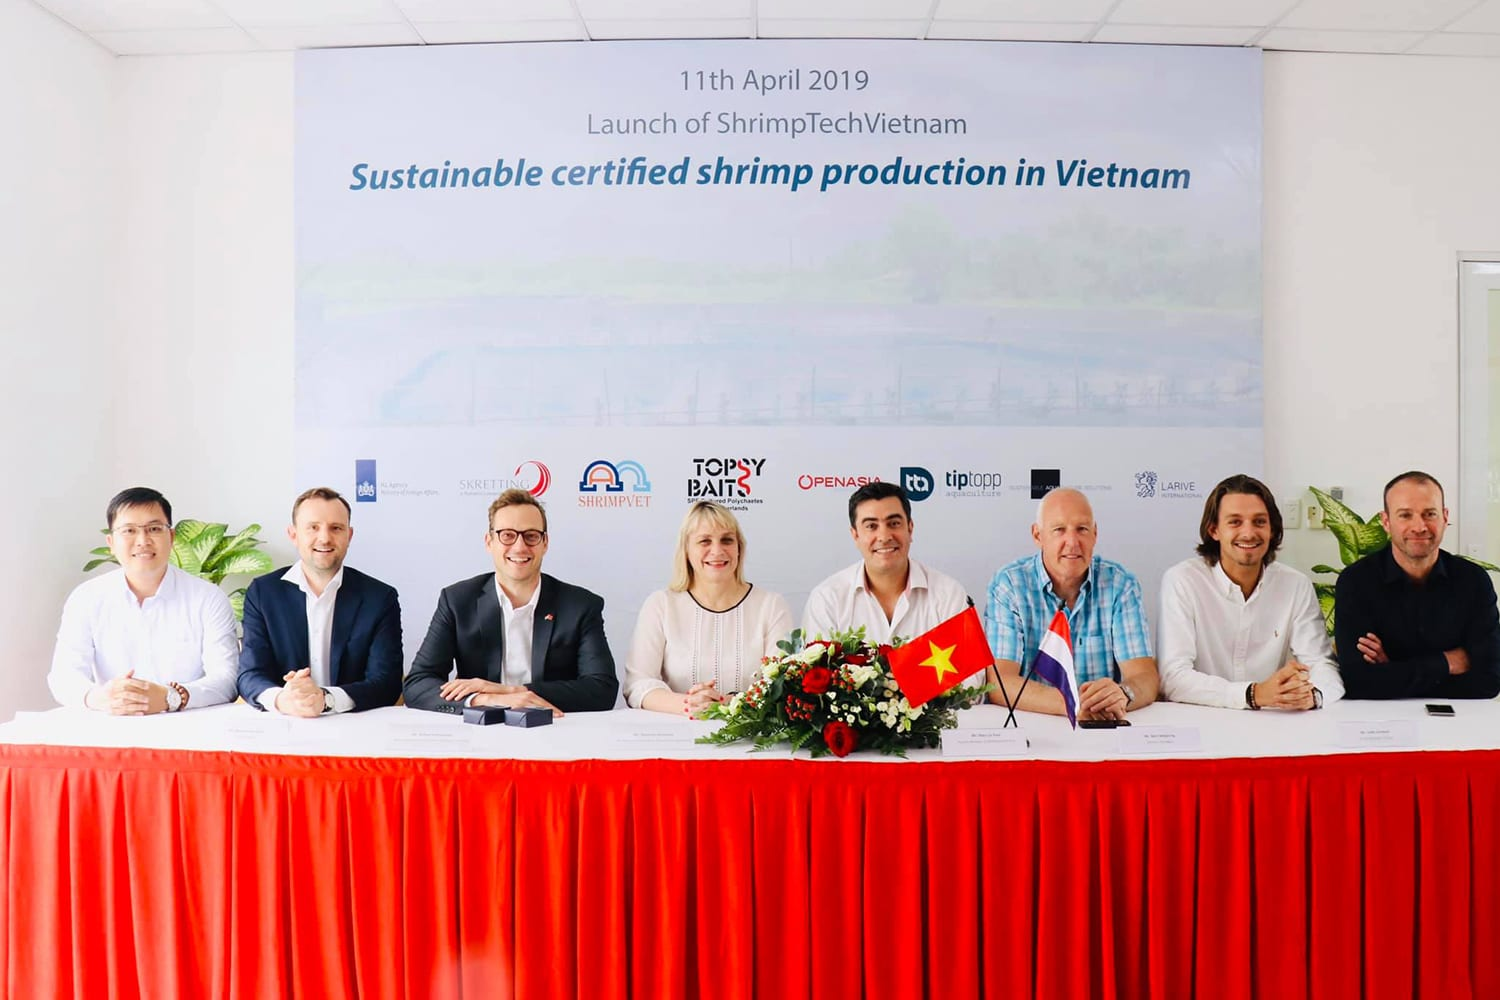 On March 11 April 2019, a new Impact Cluster collaboration ShrimpTechVietnam was signed by Marjolijn Sonnema, Director-General Agriculture of the Ministry of Agriculture,